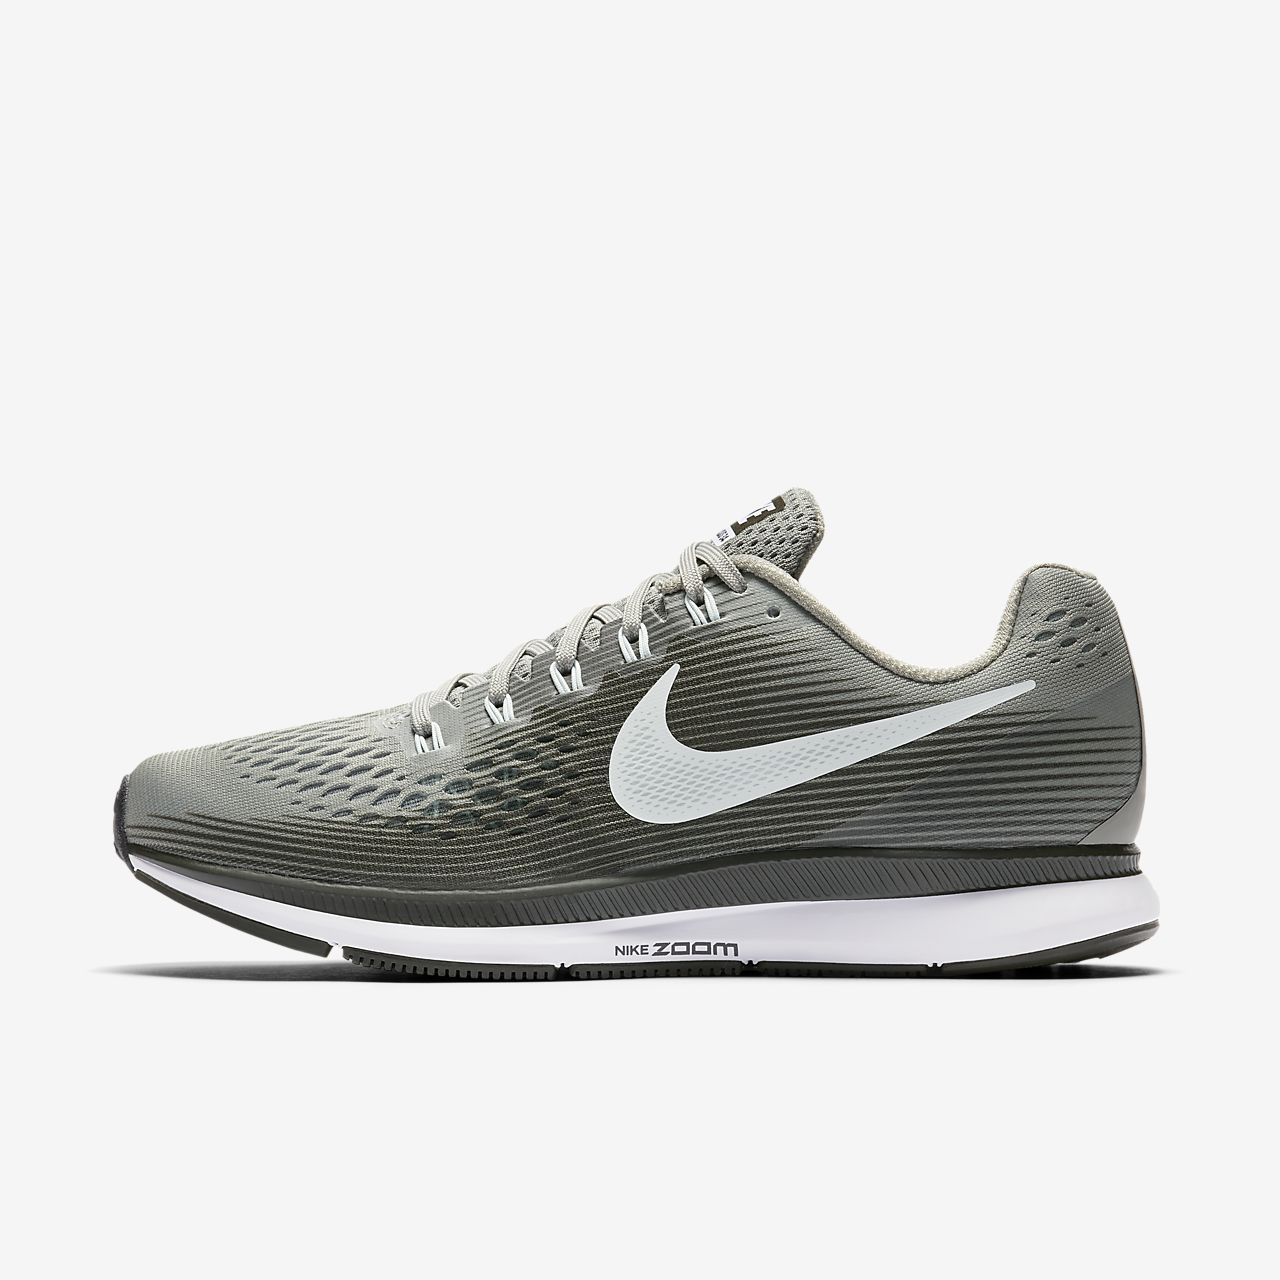 nike air zoom pegasus 34 37.5